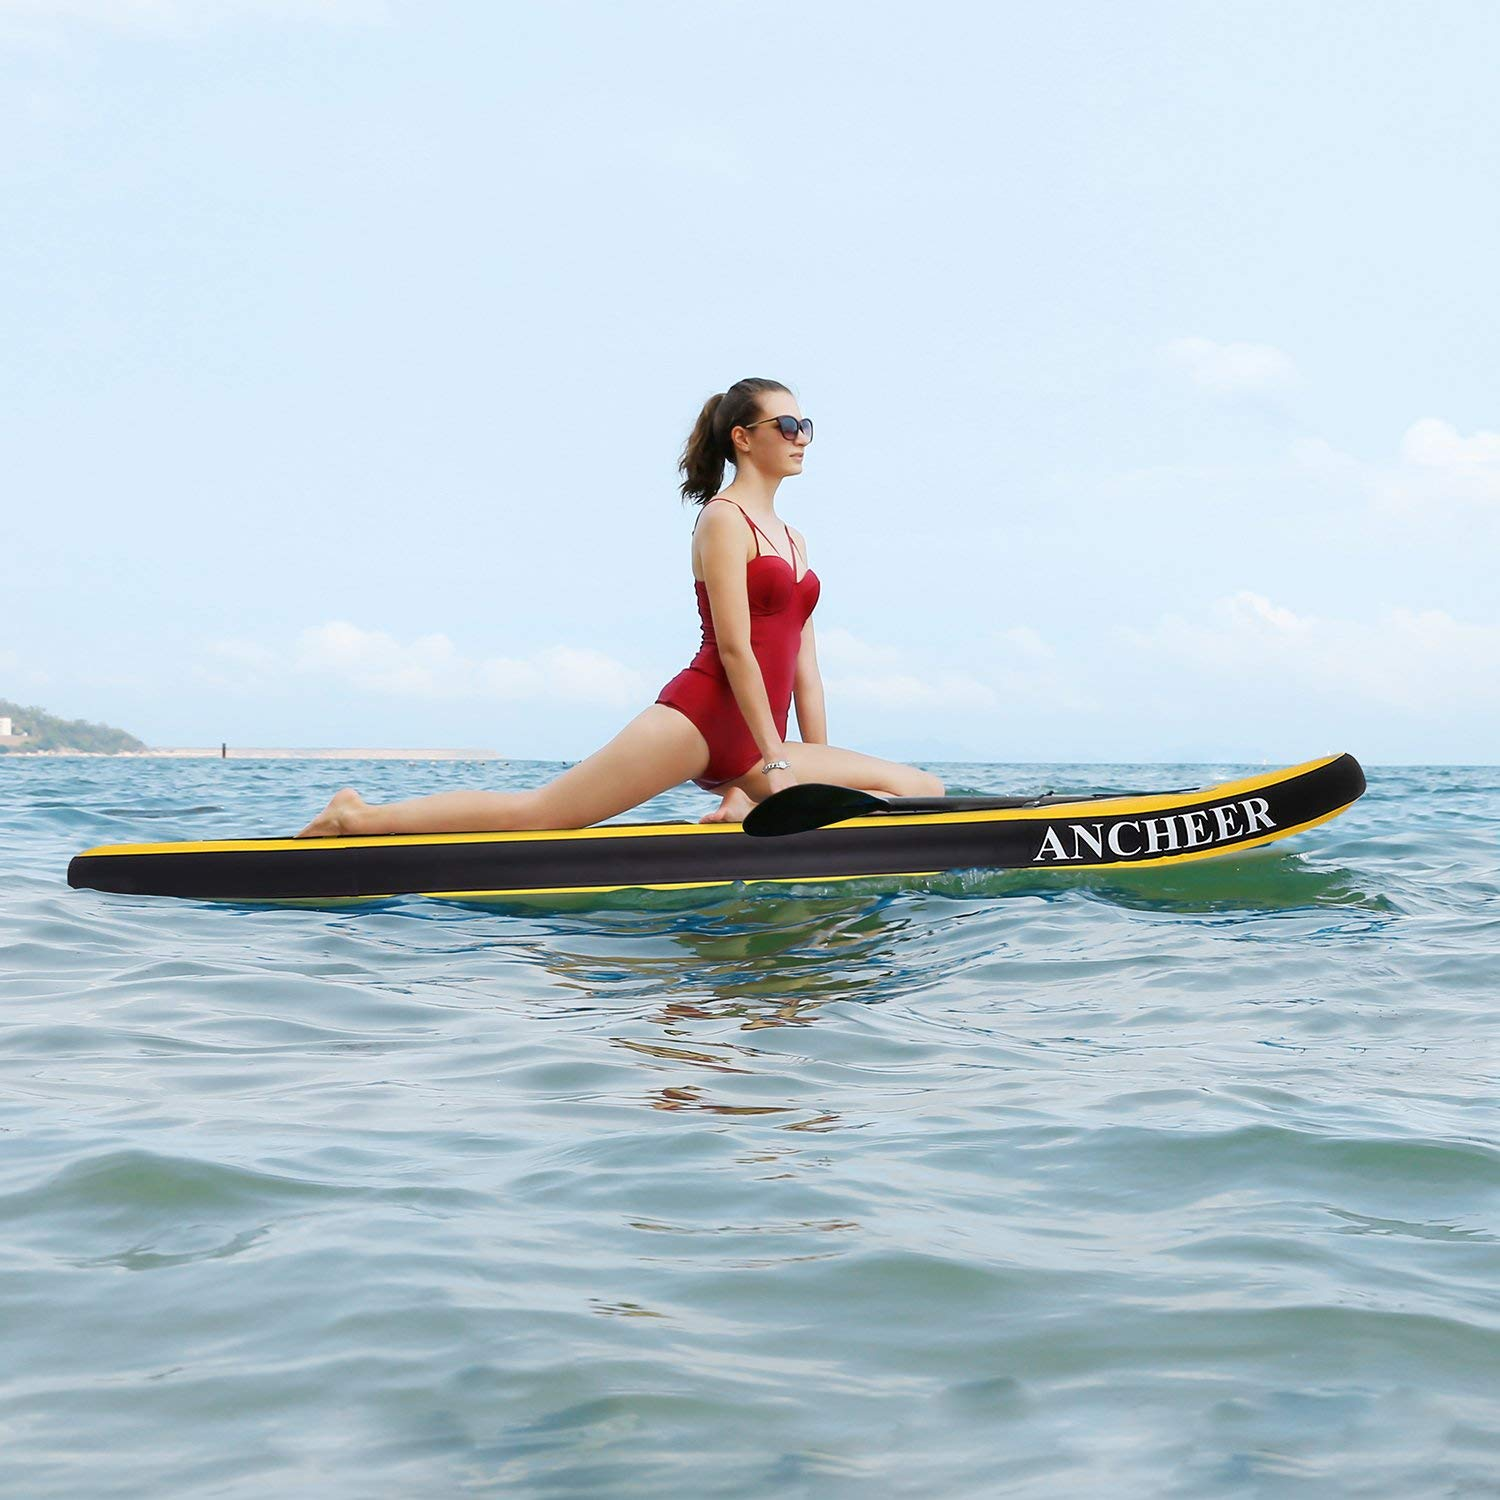 ANCHEER Inflatable Stand Up Paddle Board 10', Non-Slip Deck(6 Inches Thick), iSUP Boards Package w/Adjustable Paddle, Leash, Hand Pump and Backpack, Youth & Adult by ANCHEER (Image #8)